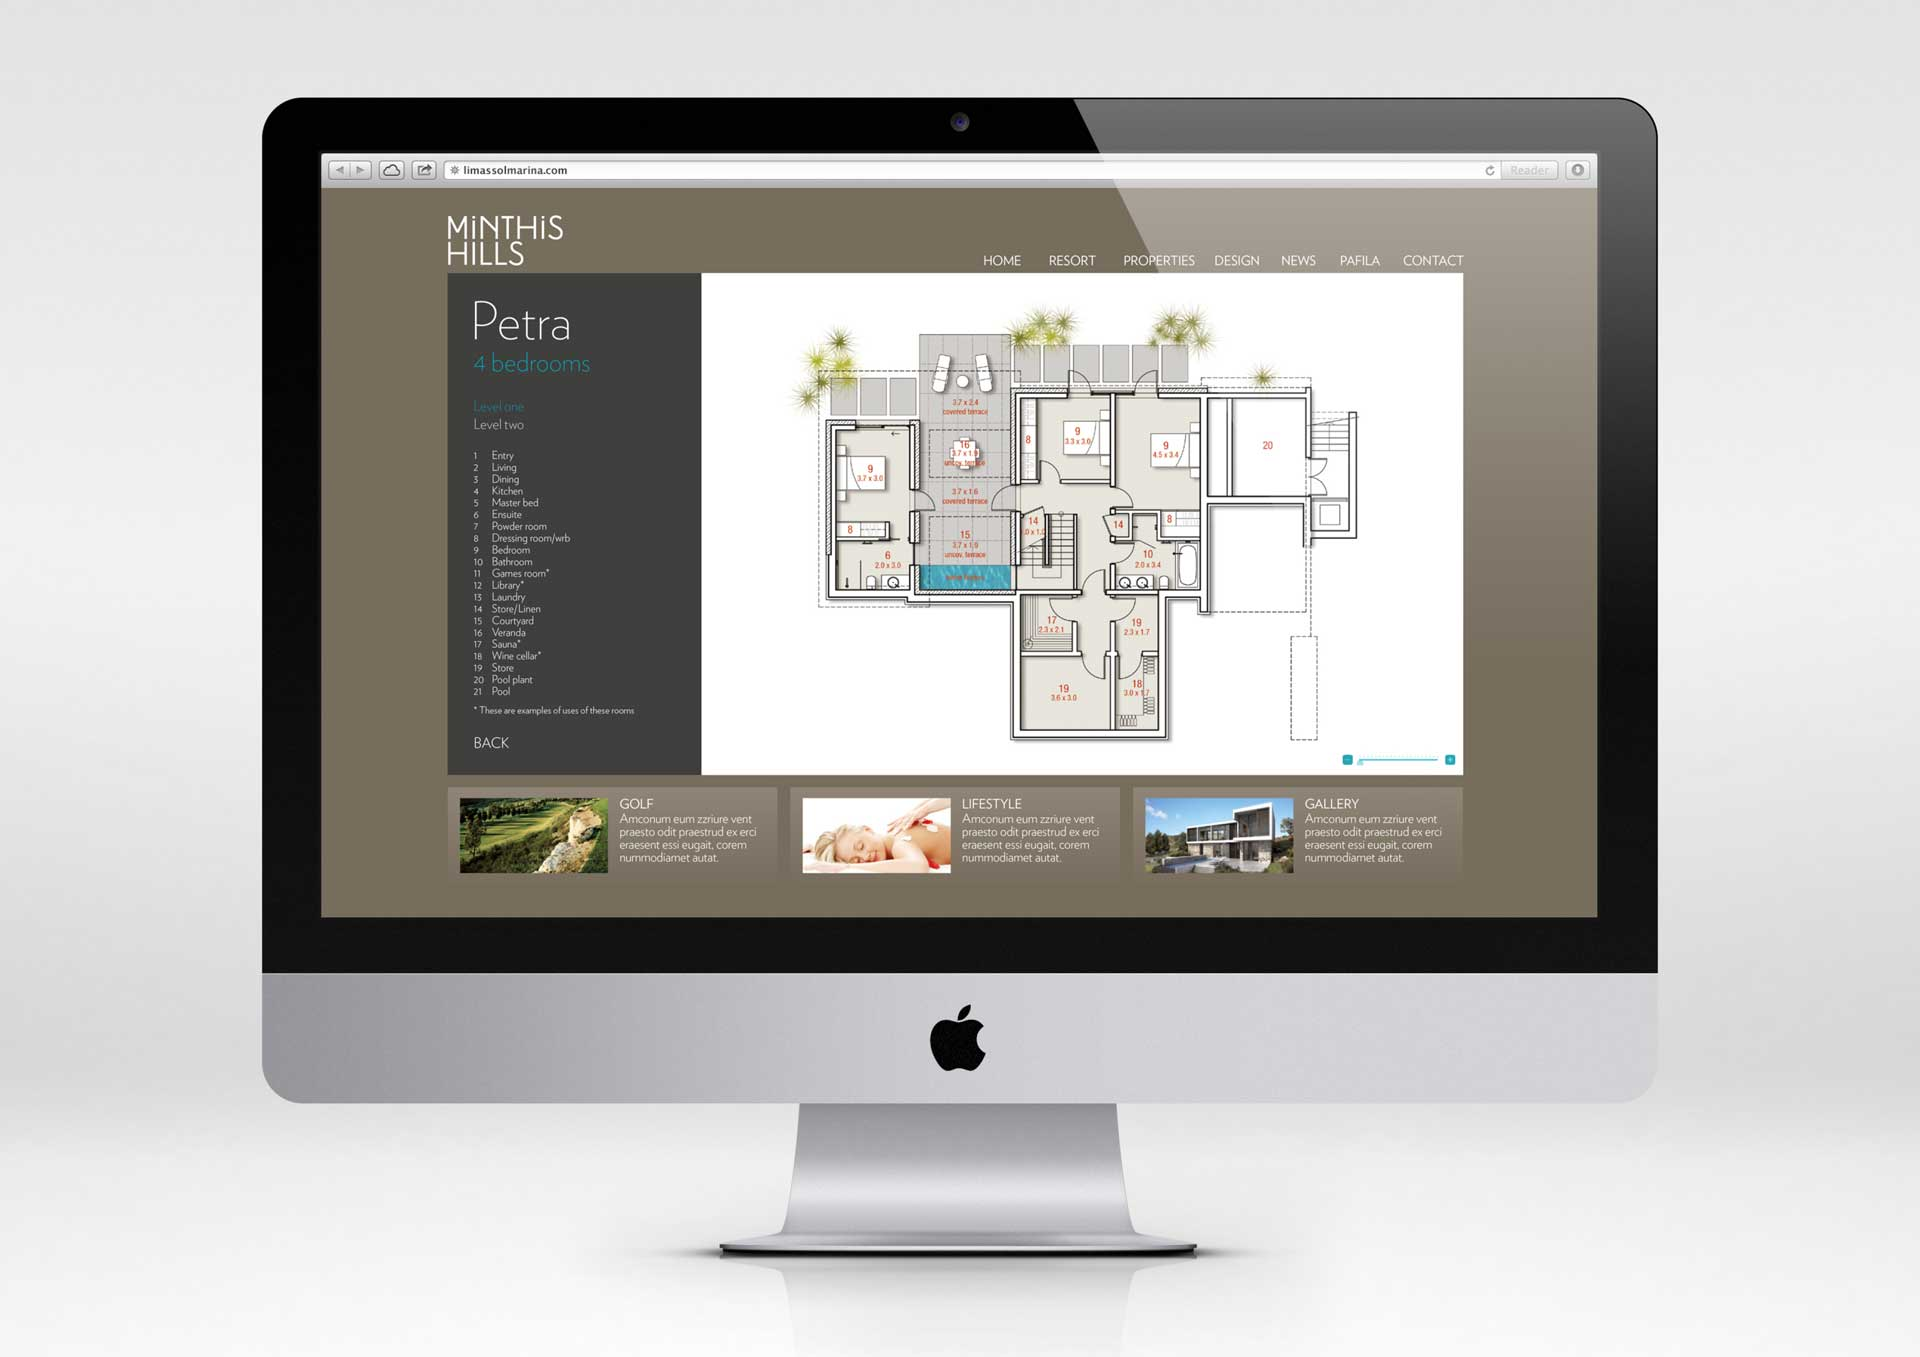 minthis-hills-property-website-6